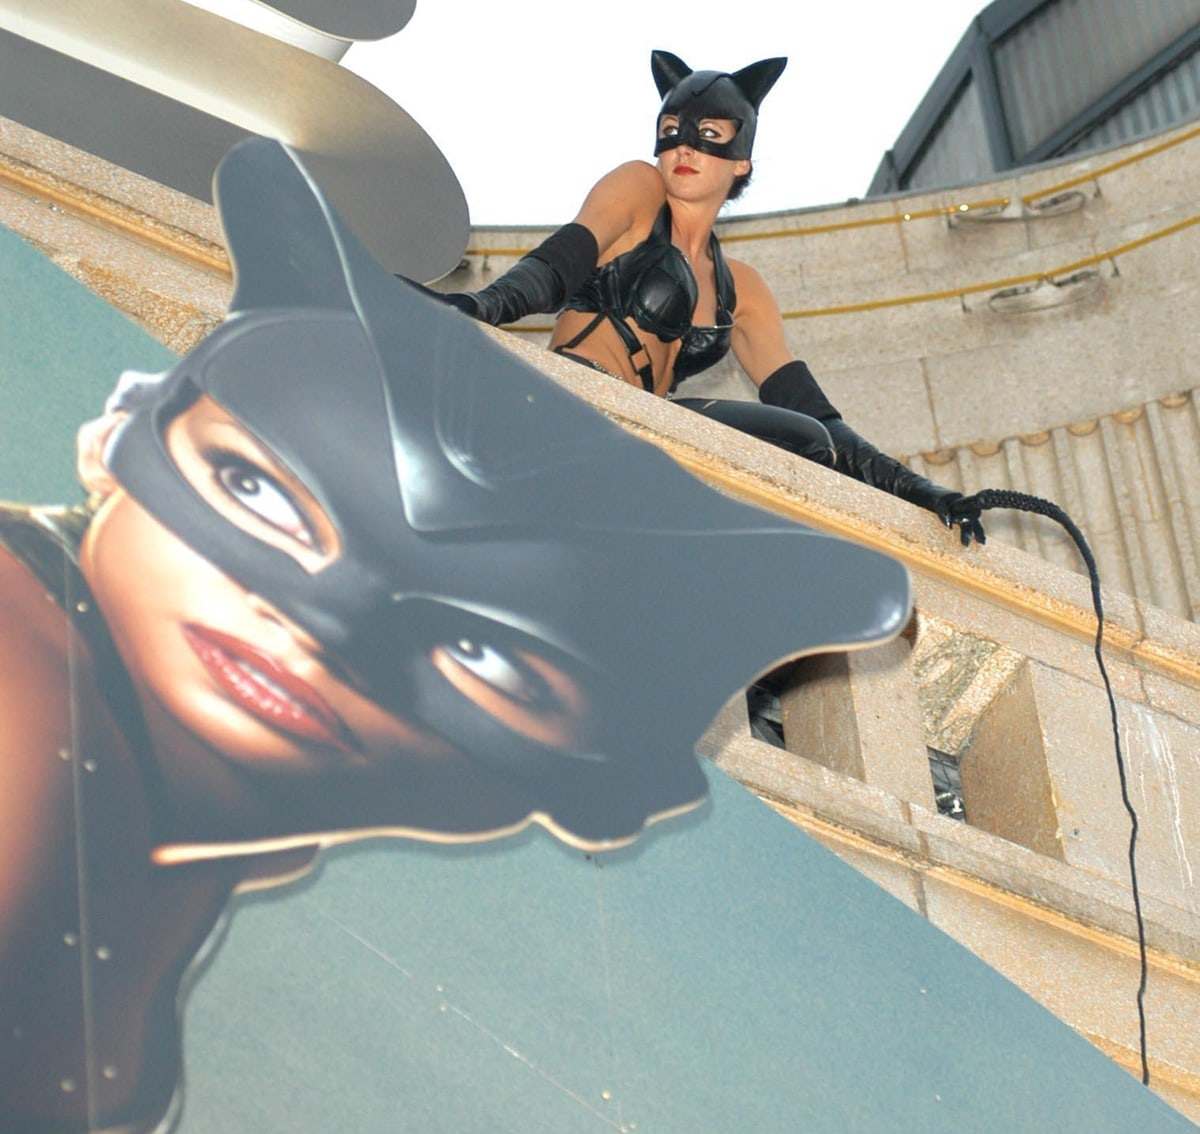 Released theatrically on July 23, 2004, by Warner Bros. Pictures, Catwoman is loosely based on the DC Comics character Catwoman